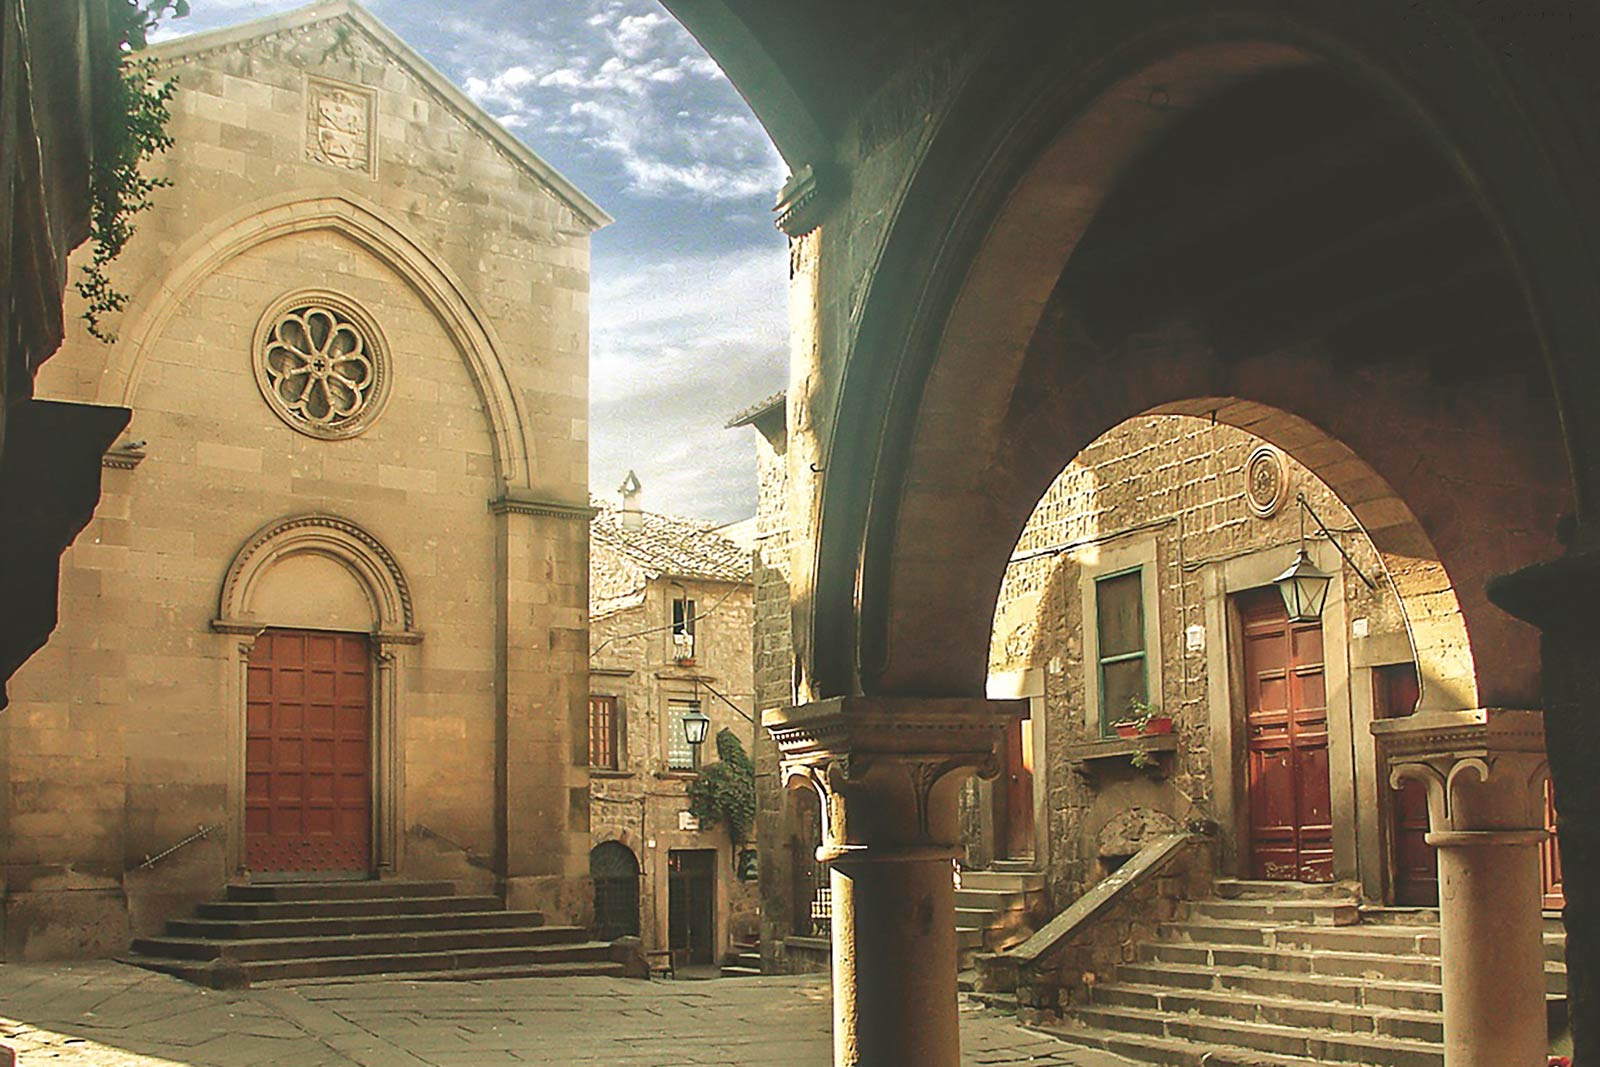 Viterbo's historical center - The San Pellegrino quarter